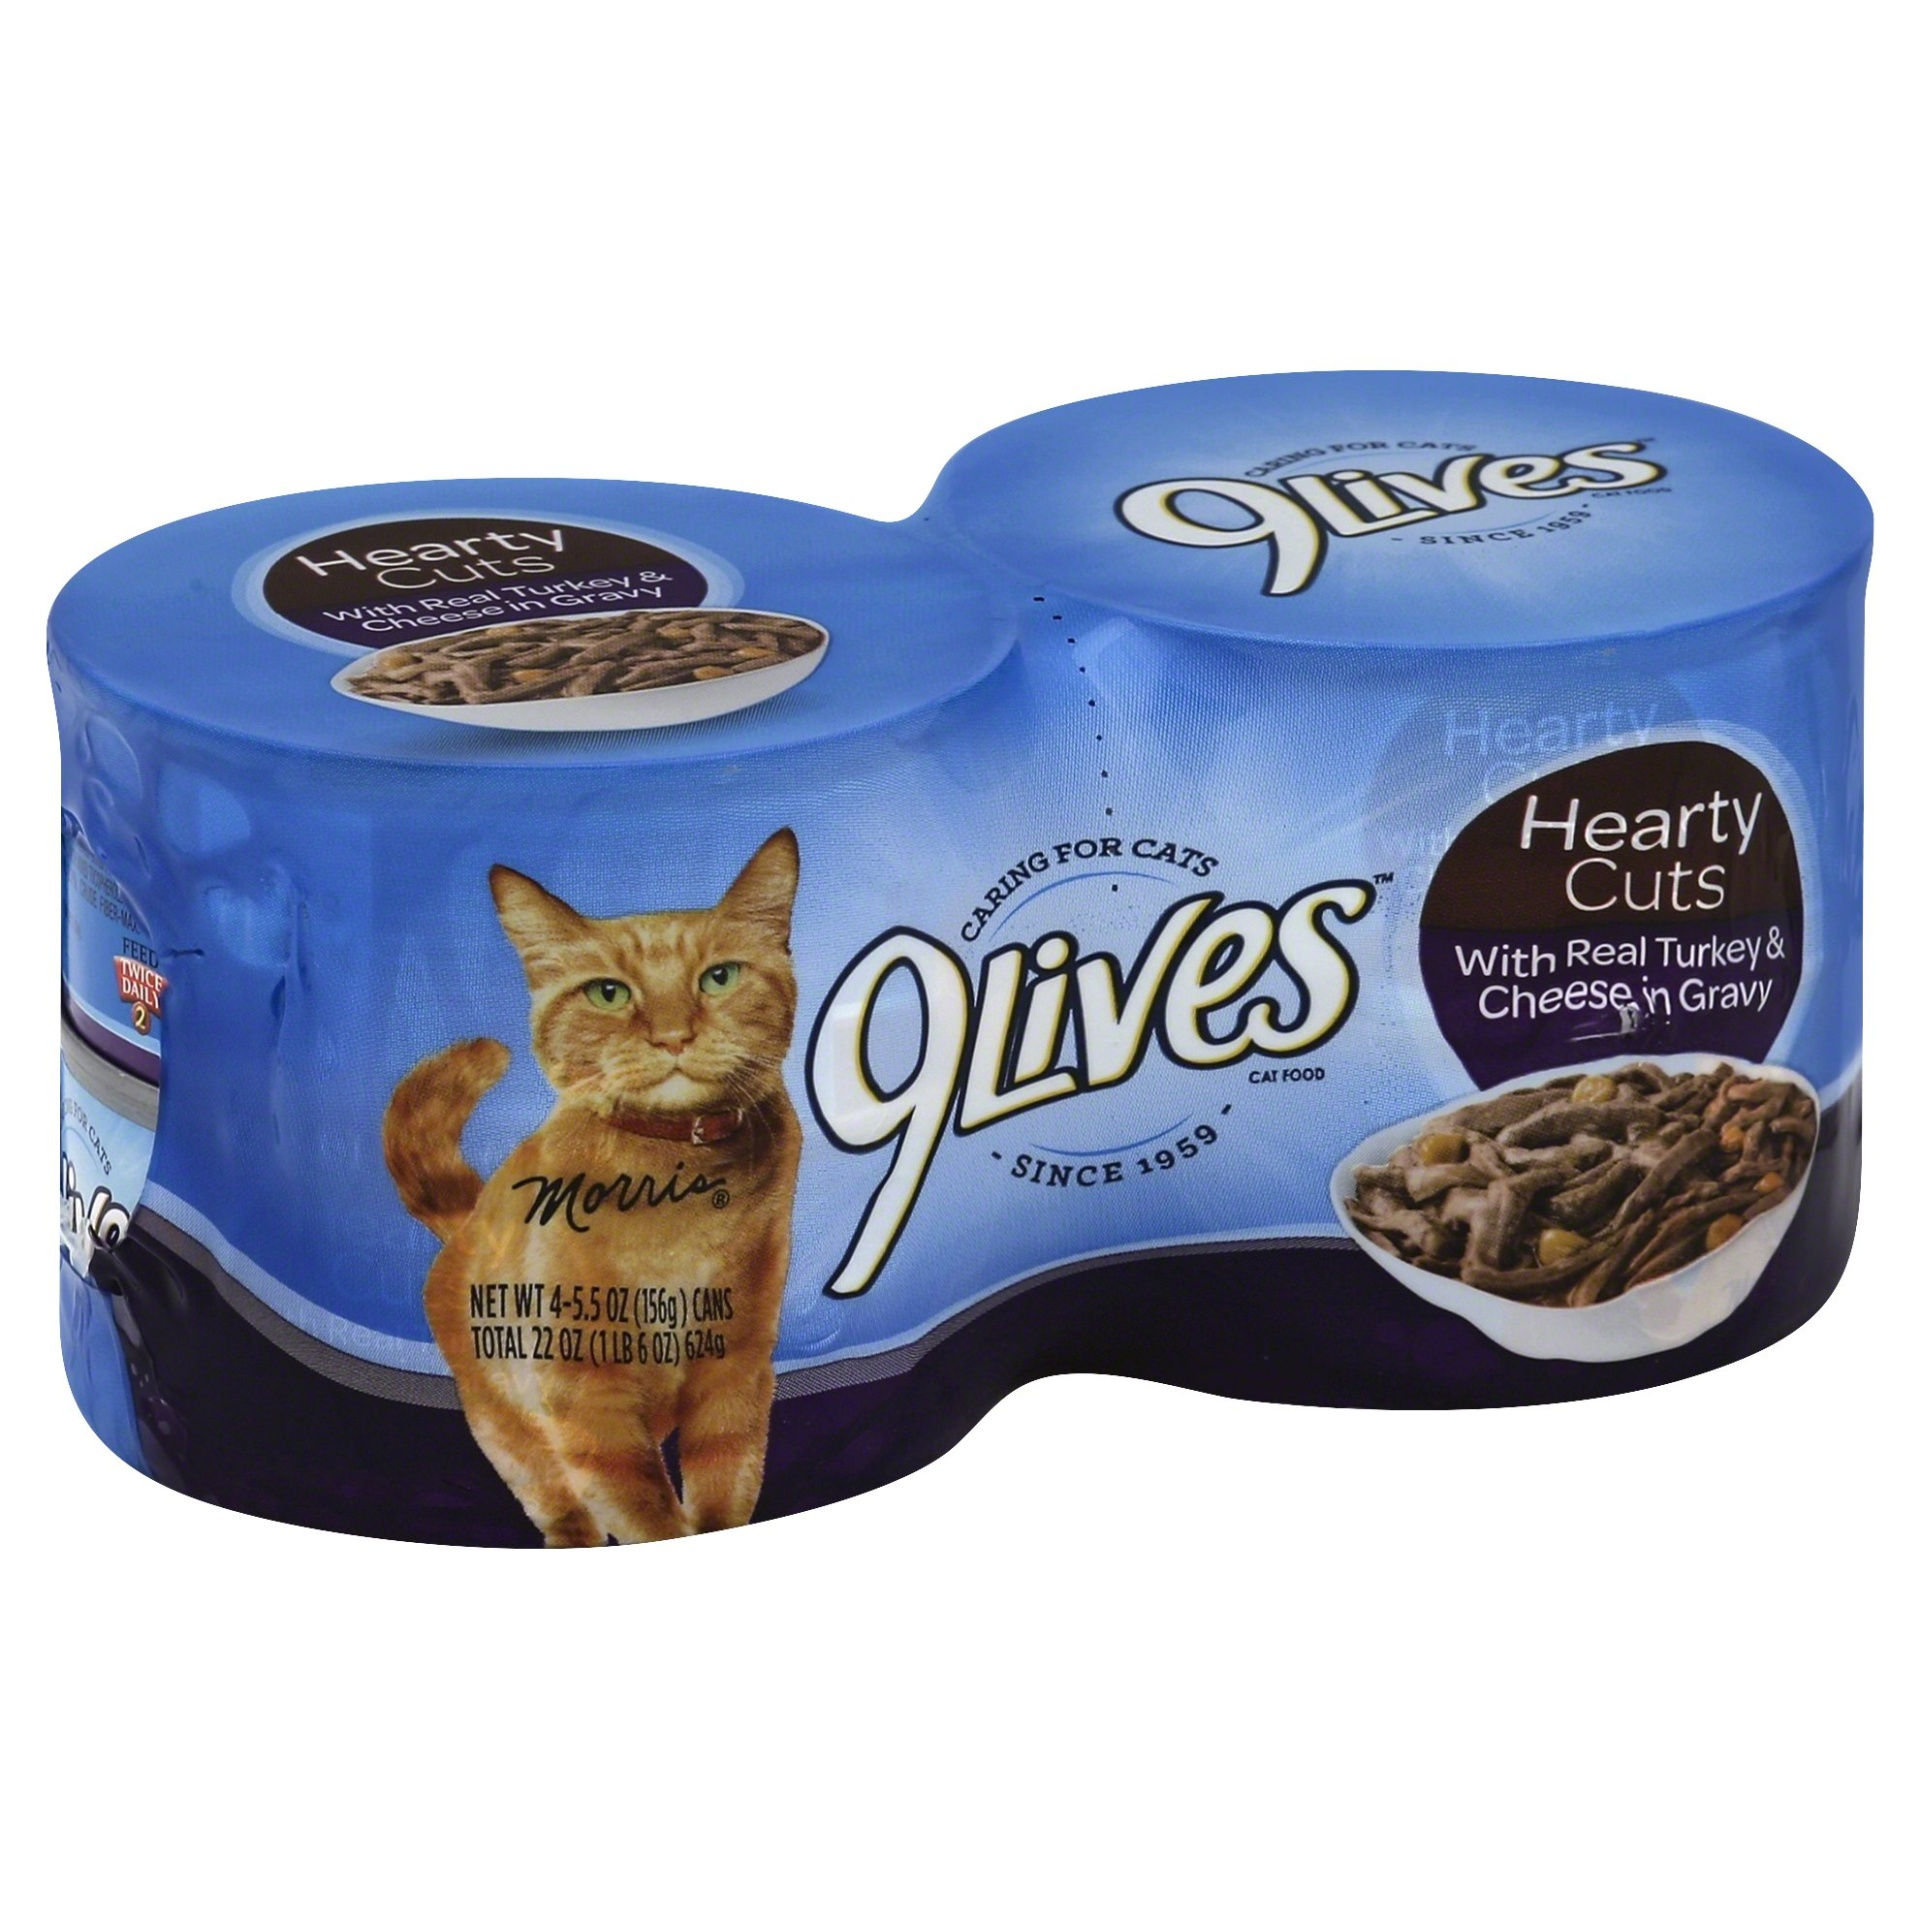 slide 1 of 2, 9Lives Hearty Cuts Cat Food, with Real Turkey & Cheese in Gravy,